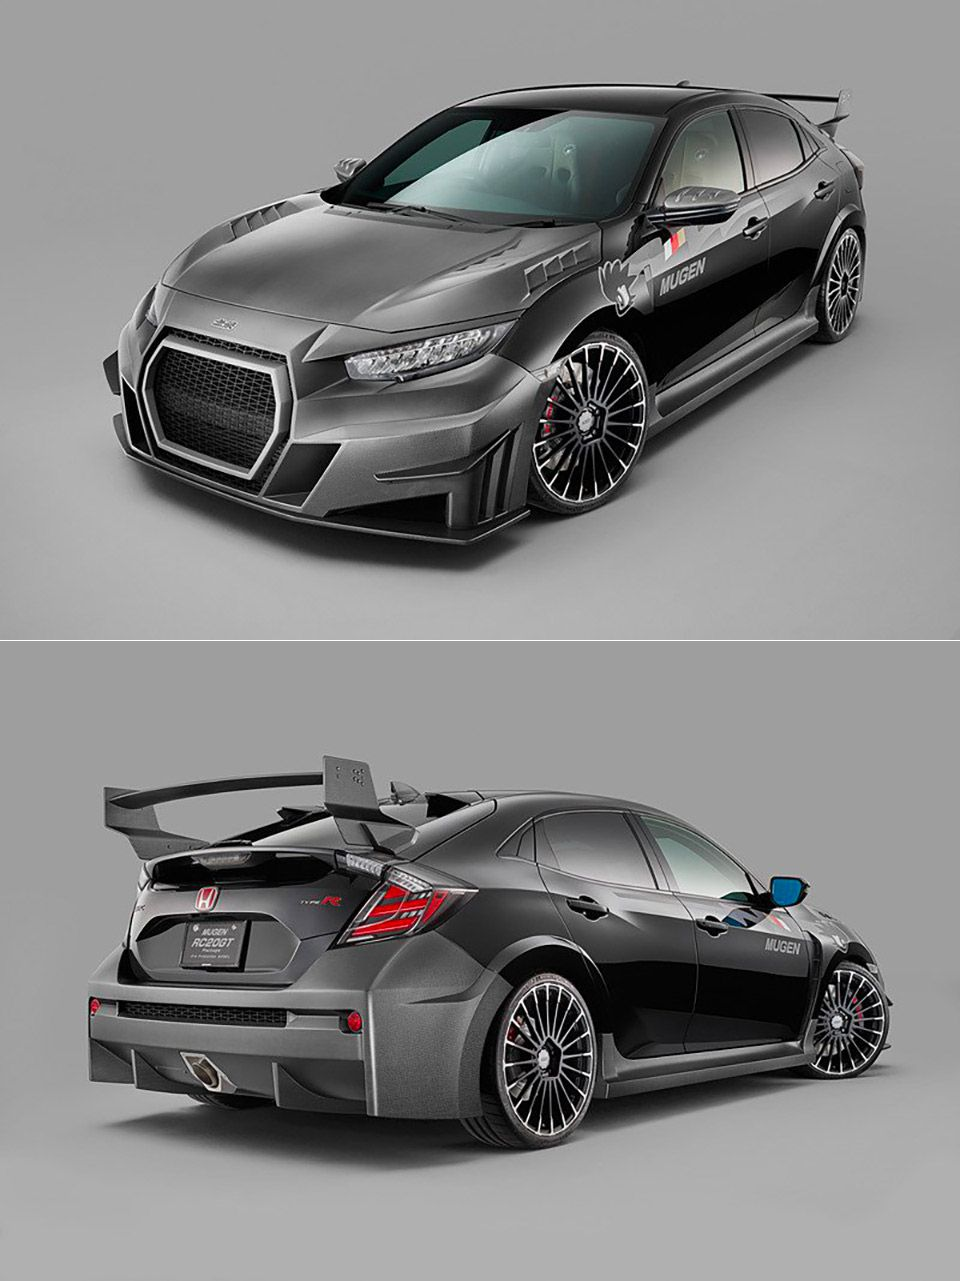 This Mugen Civic Type R Might Be The Craziest Looking Yet Honda Civic Type R Honda Civic Civic